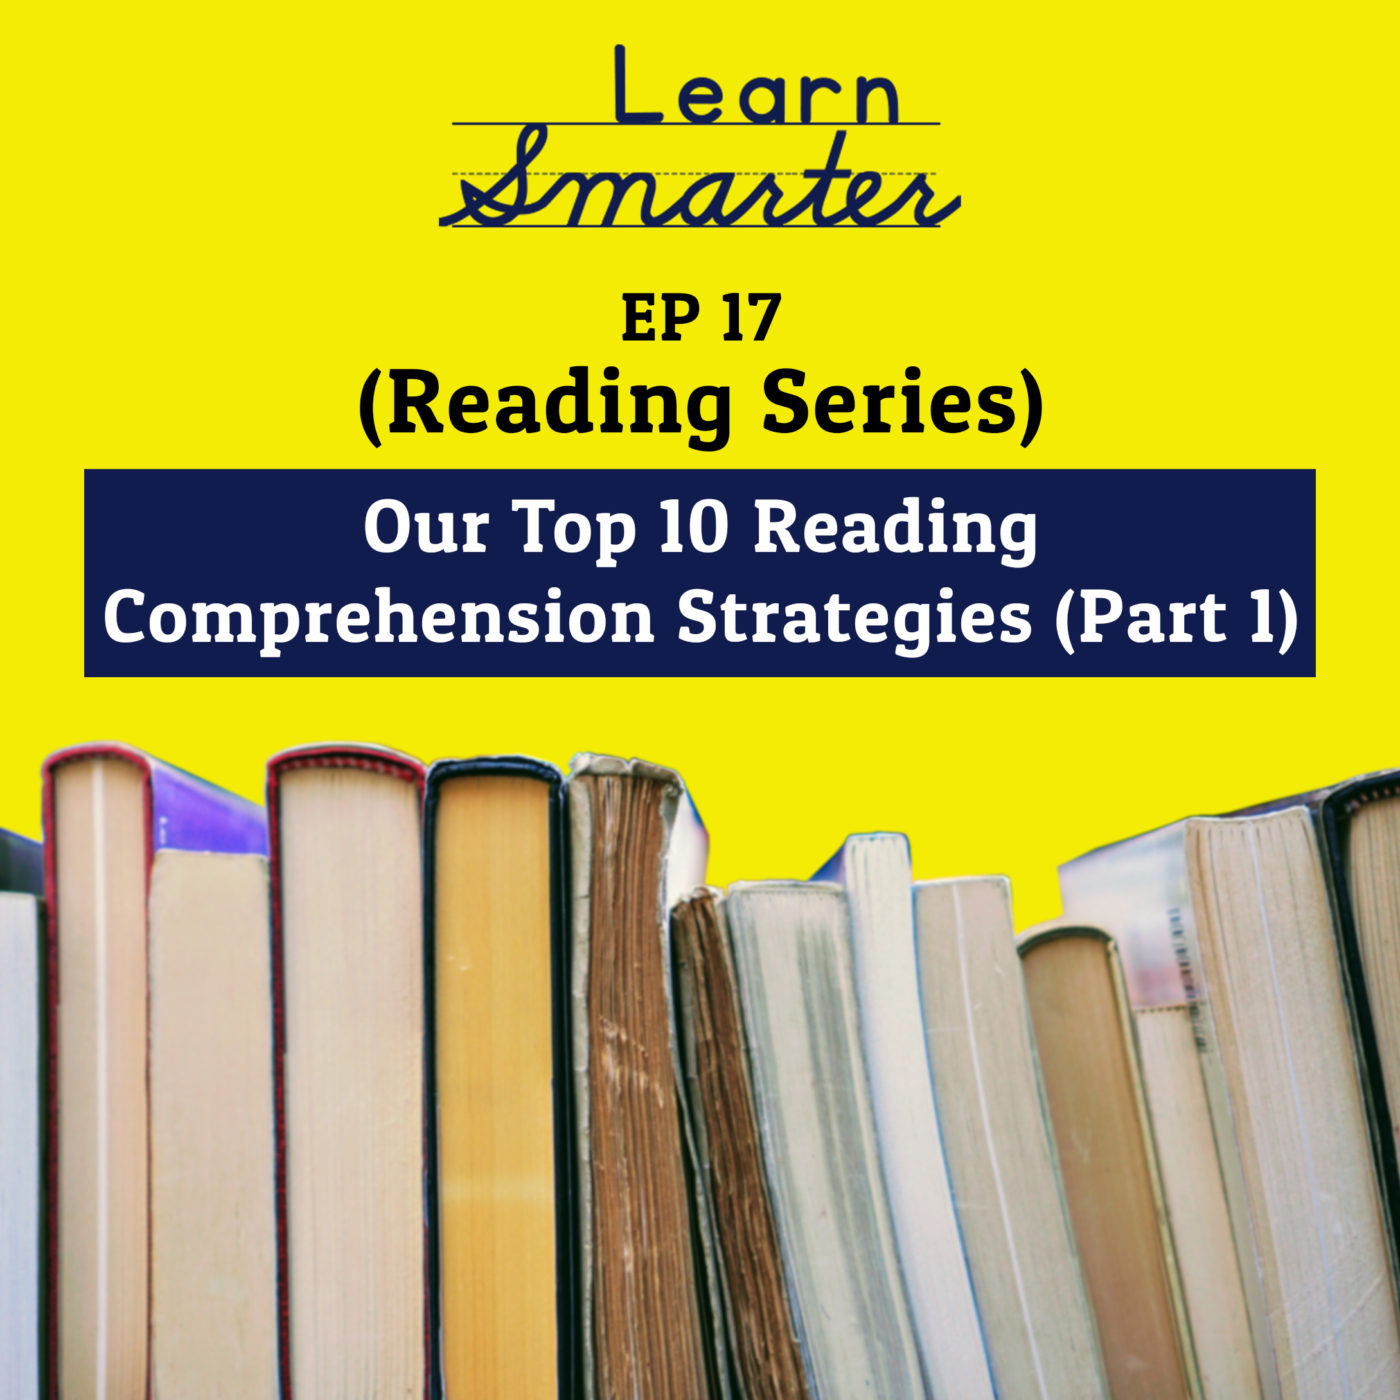 17: Our Top 10 Reading Comprehension Strategies (Part 1)